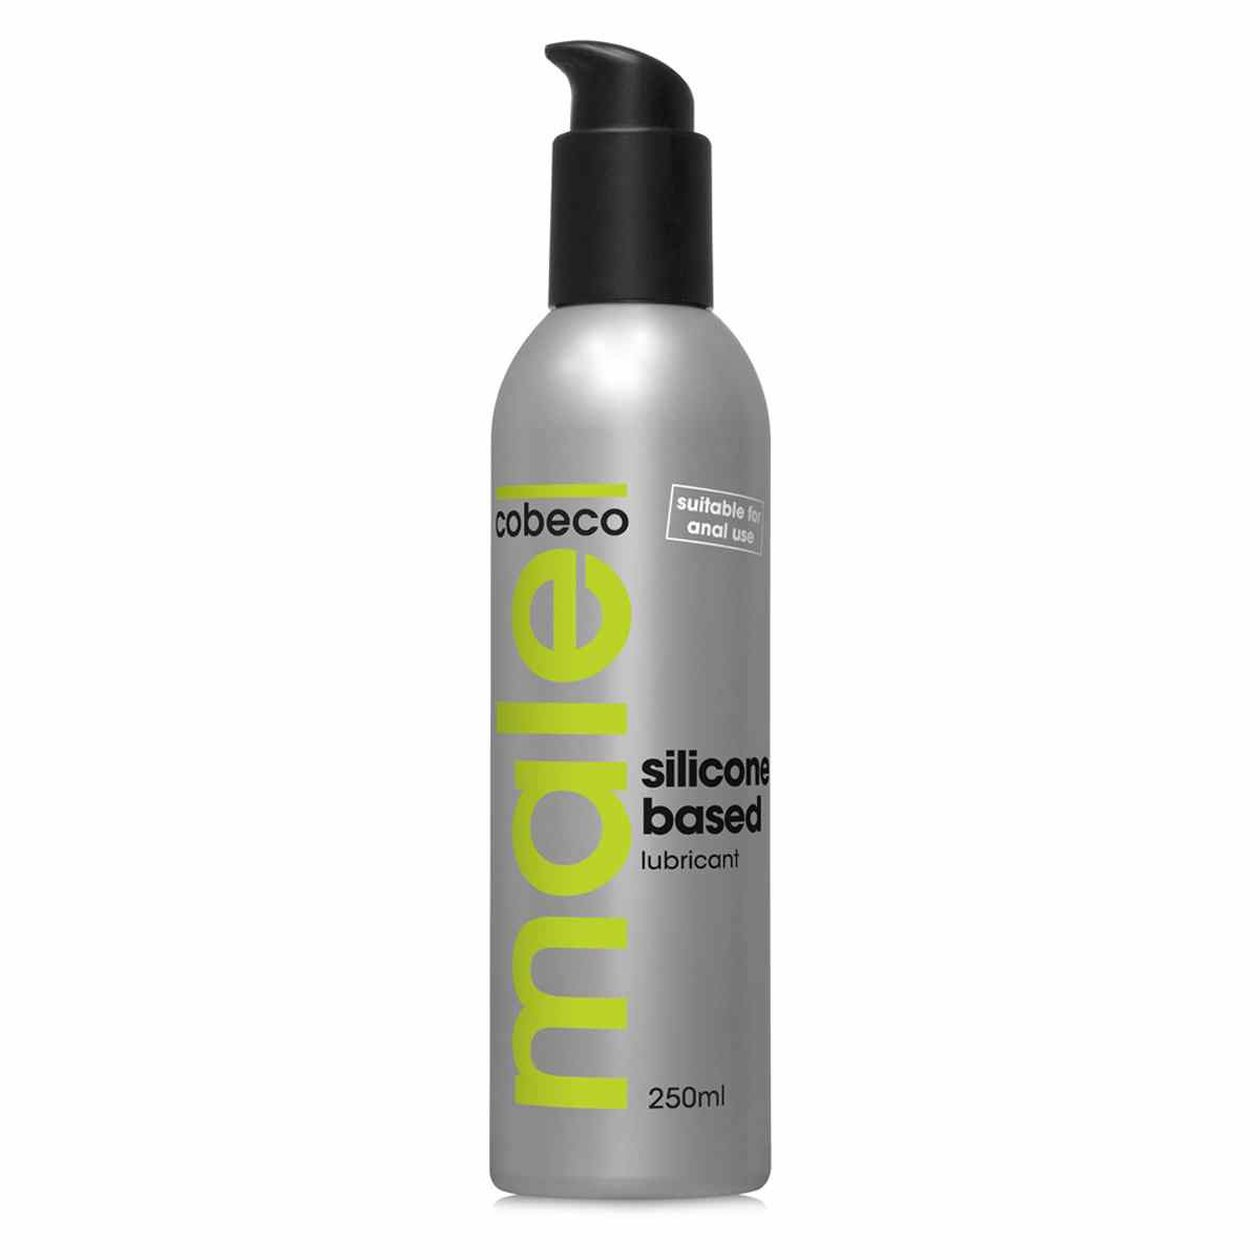 MALE Lubricant Silicone Based 250 ml